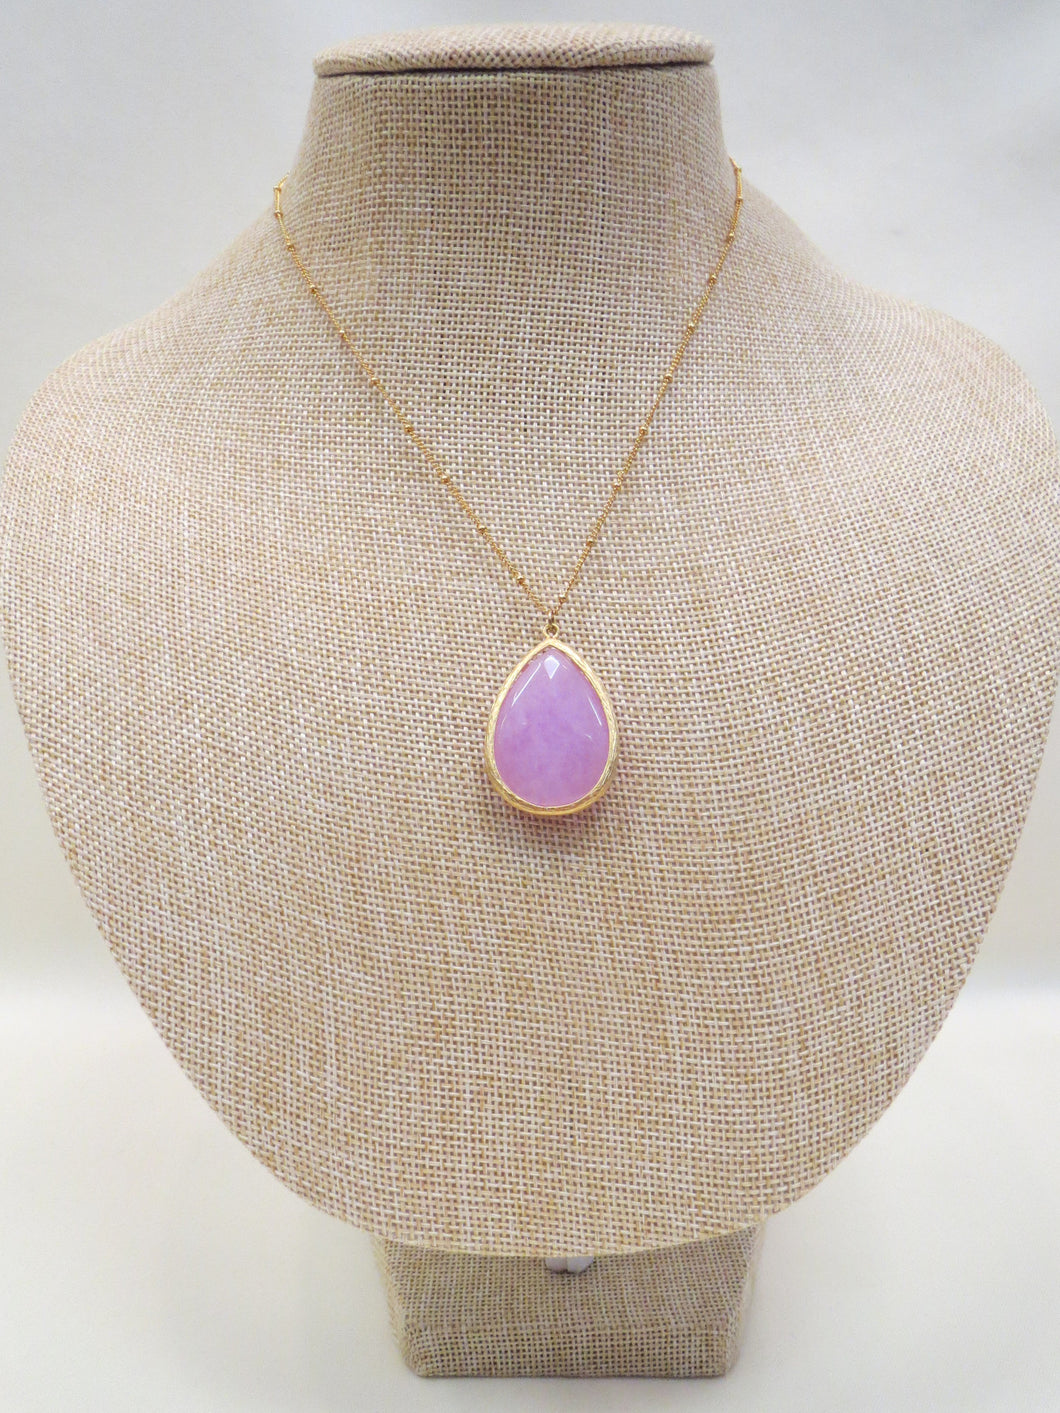 ADO Teardrop Stone Violet Necklace | All Dec'd Out